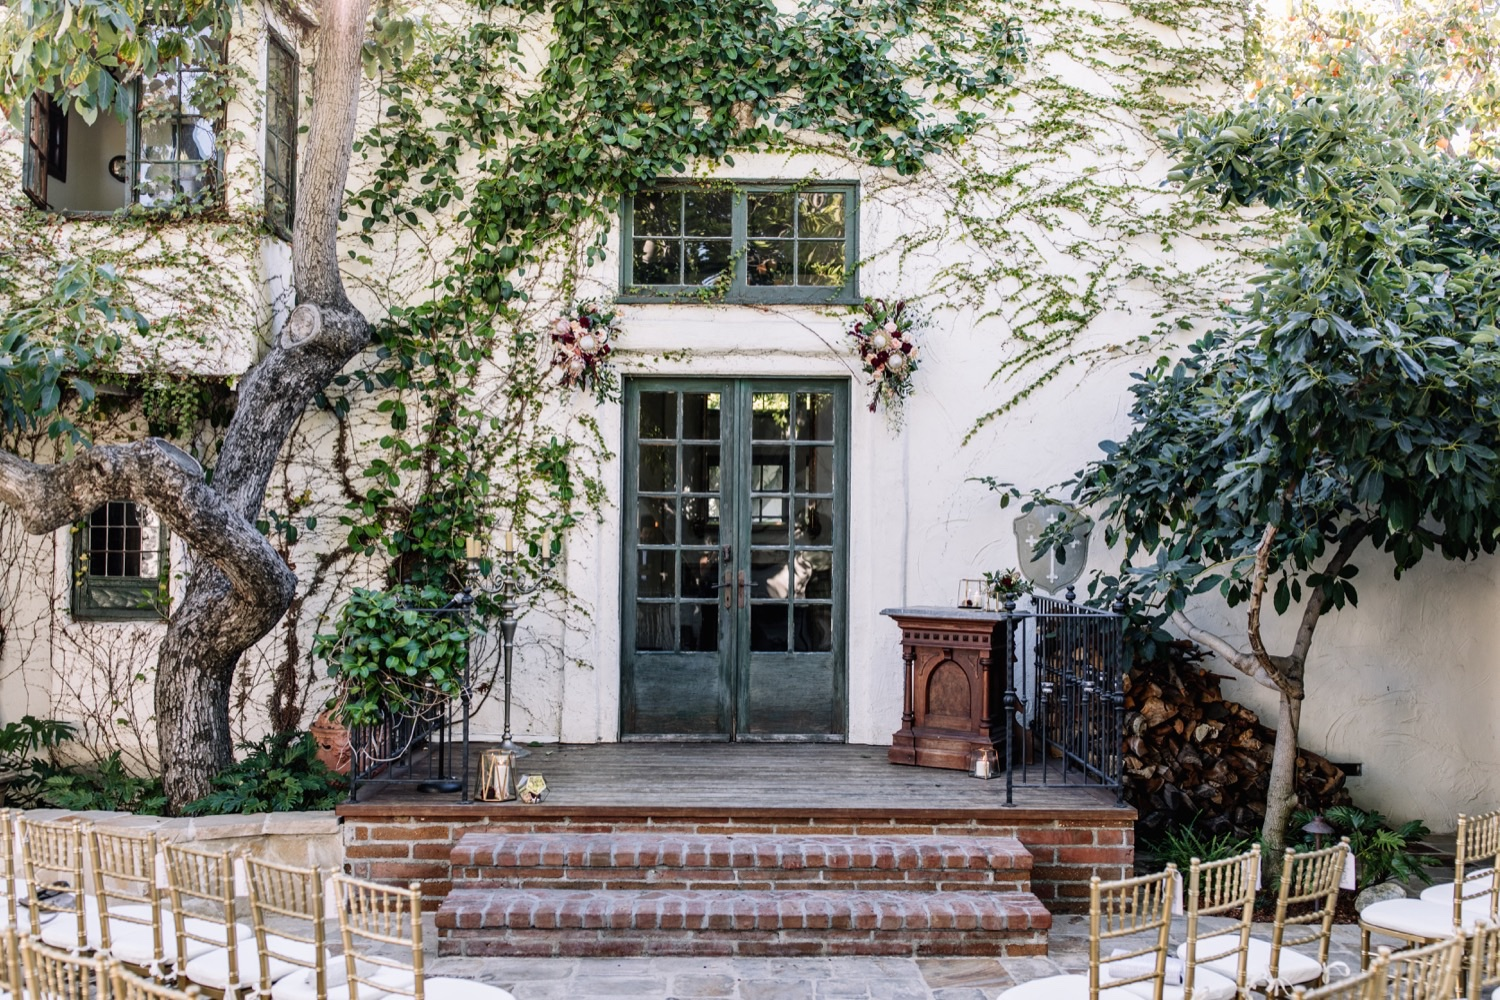 Outdoor Boho Wedding California Inspiration - Villa San Juan Capistrano